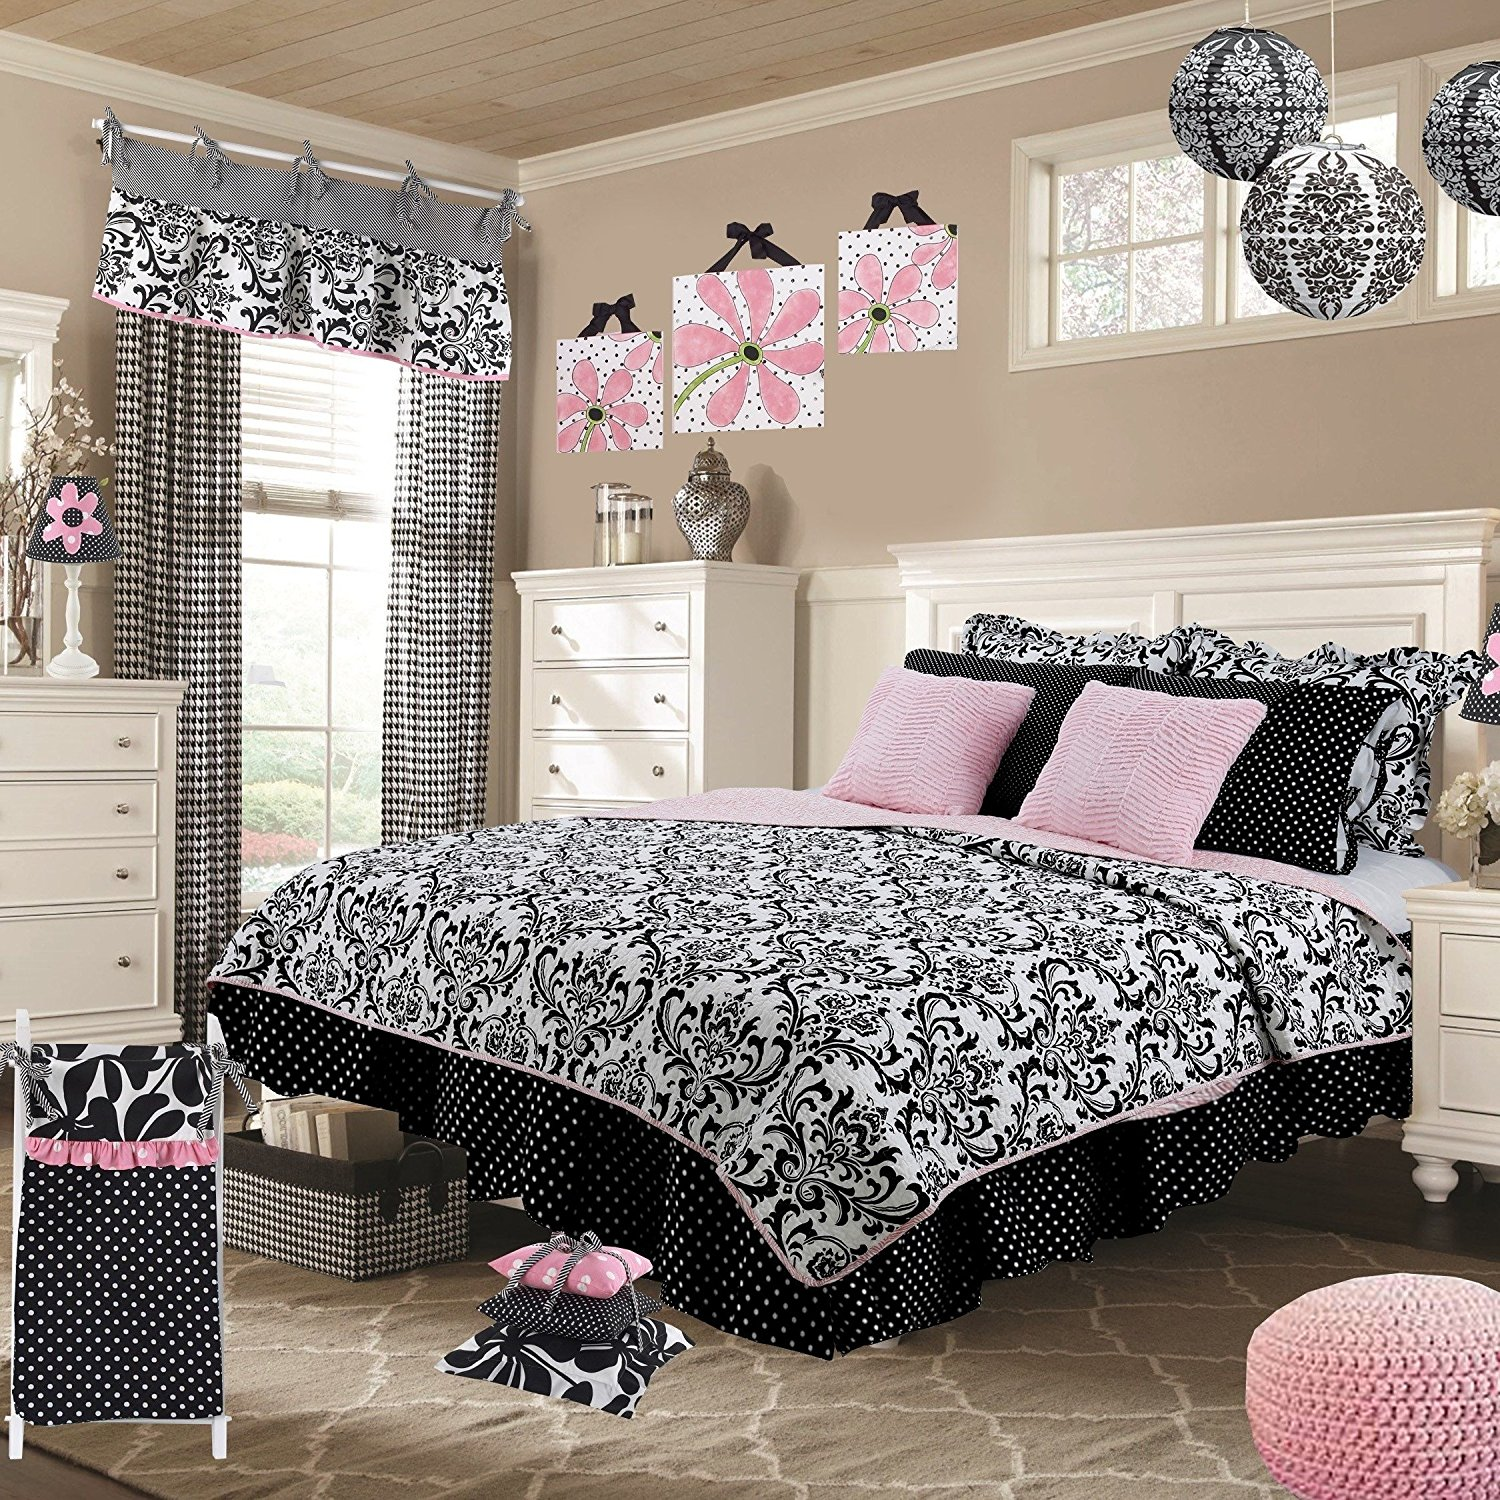 8 Piece Girly Black White Rich Damask Pattern QuiltFULL Size Set, Beautiful Boho Chic Polka Dots Print & Ruffled Design Deco Pillows, Solid Blush Reverse Bedding, Casual Fun Style, Soft & Cozy Cotton